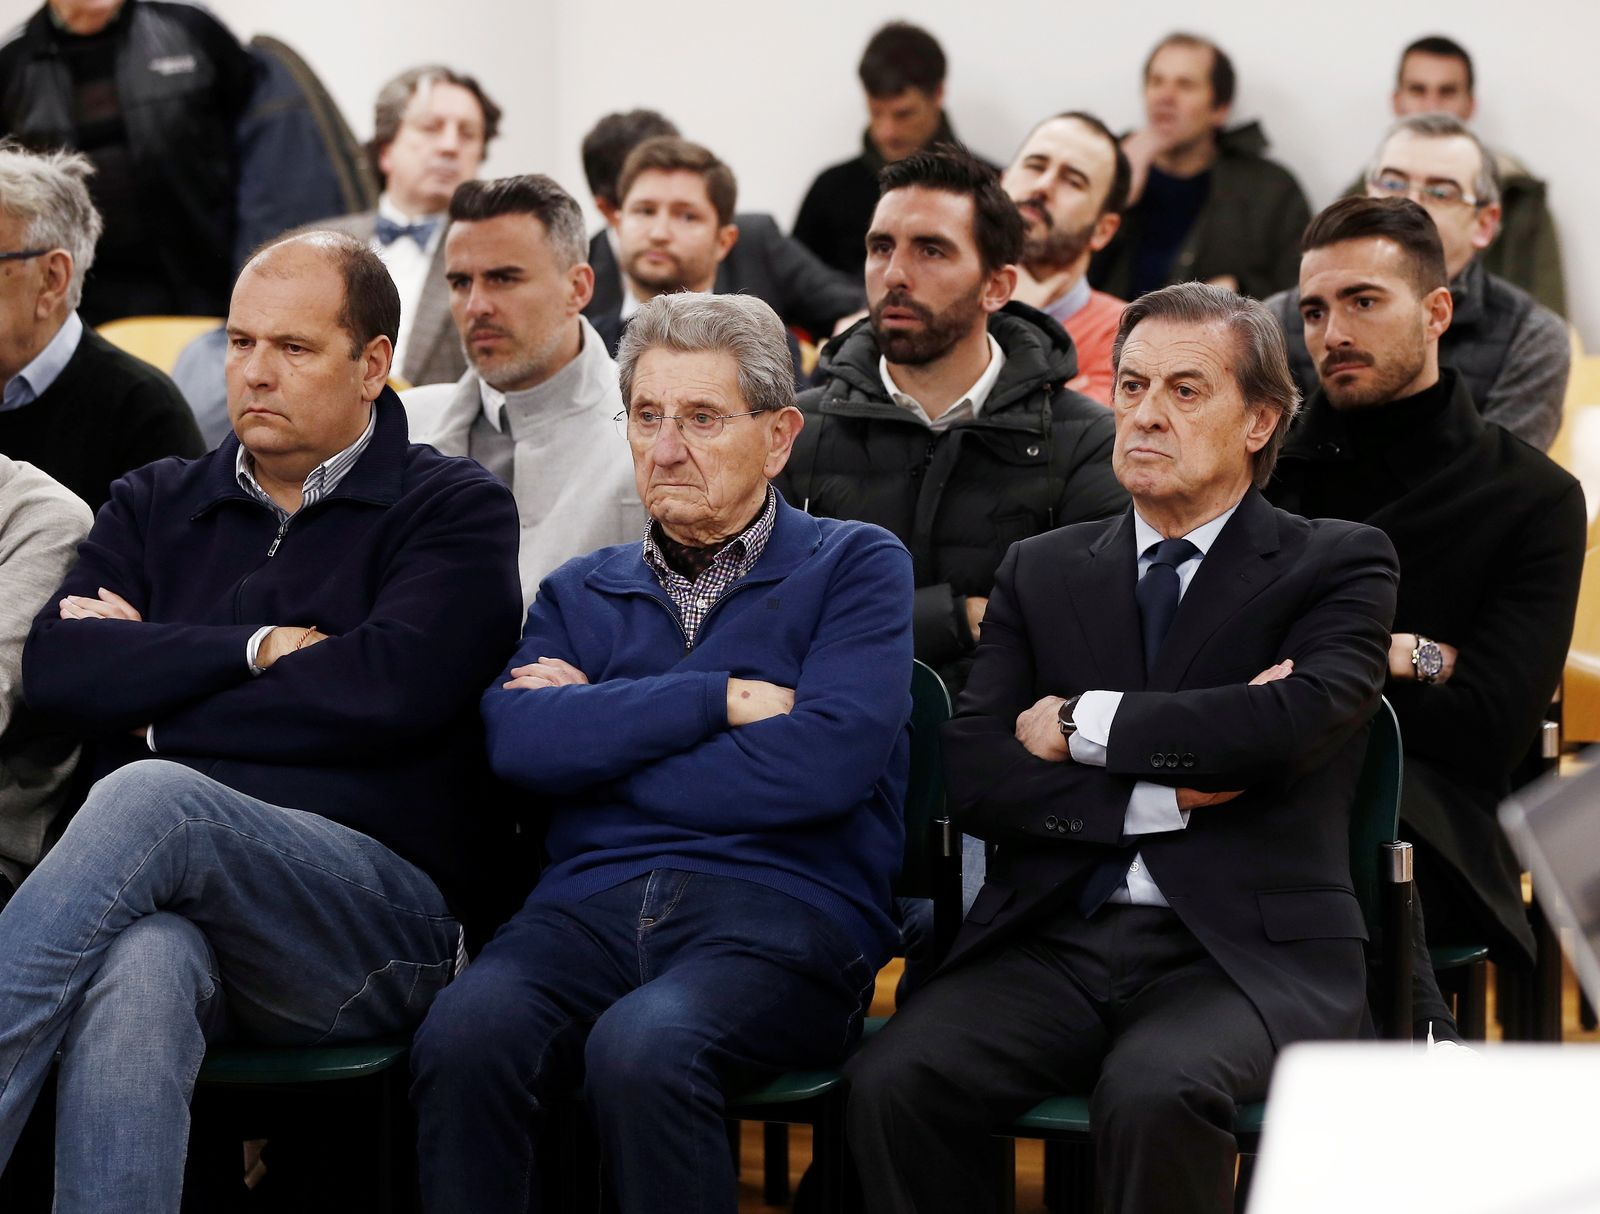 Trial of former soccer player and former managers over match fixing allegations, Pamplona Navarra, Spain - 20 Jan 2020